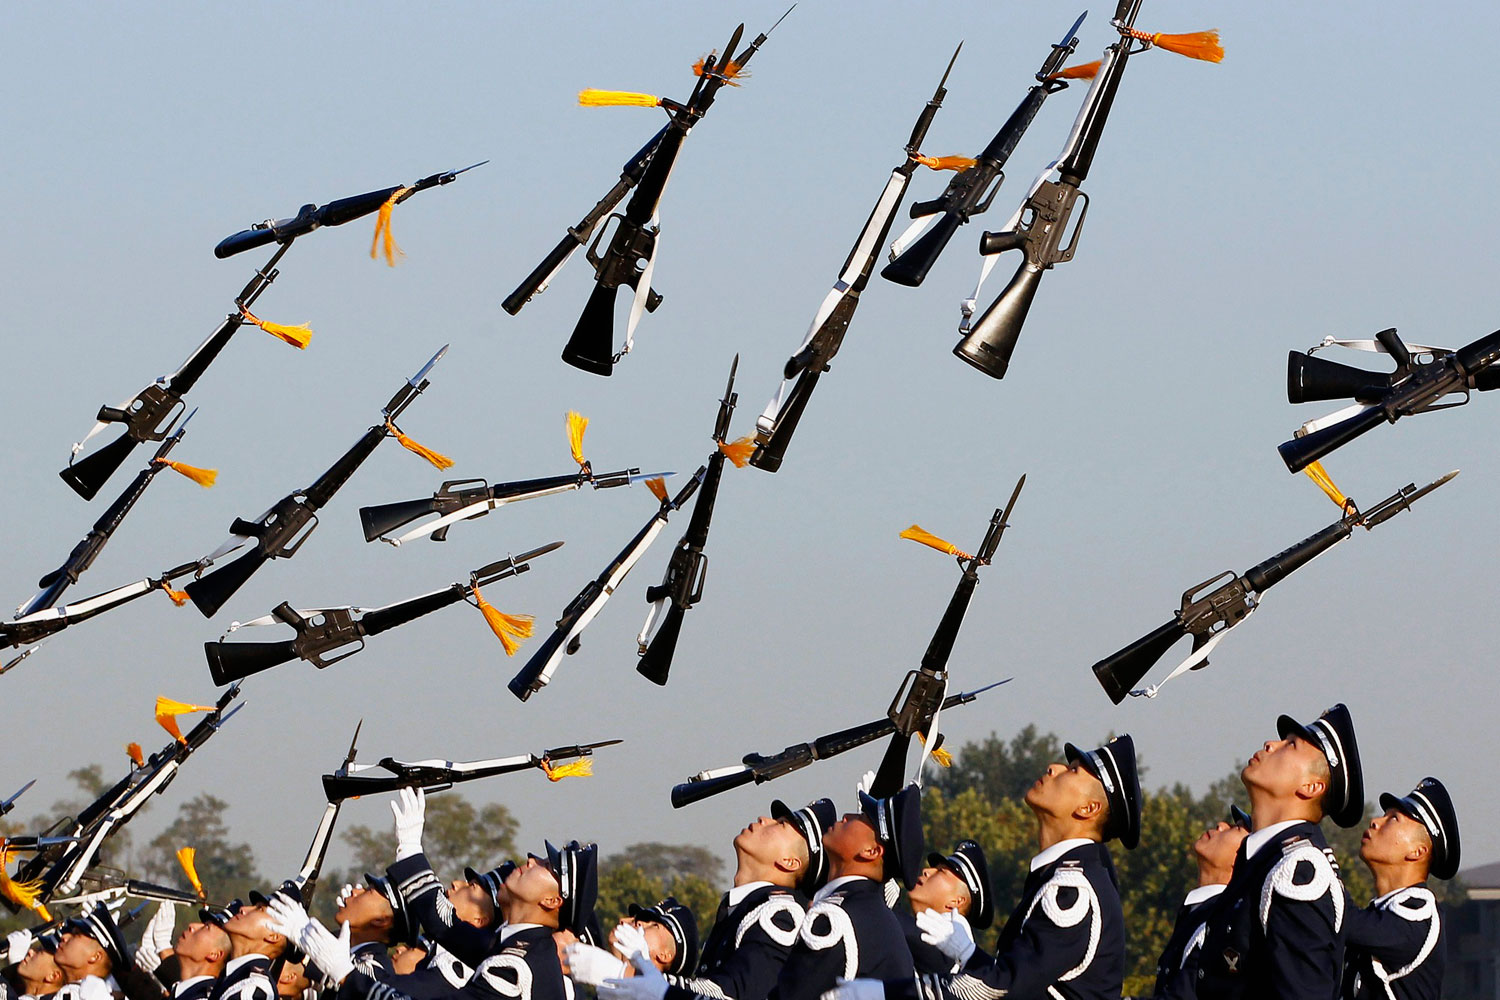 October 18, 2011. South Korean honour guards perform during a welcoming ceremony for foreign military leaders visiting for the Seoul International Aerospace & Defense Exhibition 2011 at the Defence Ministry in Seoul.